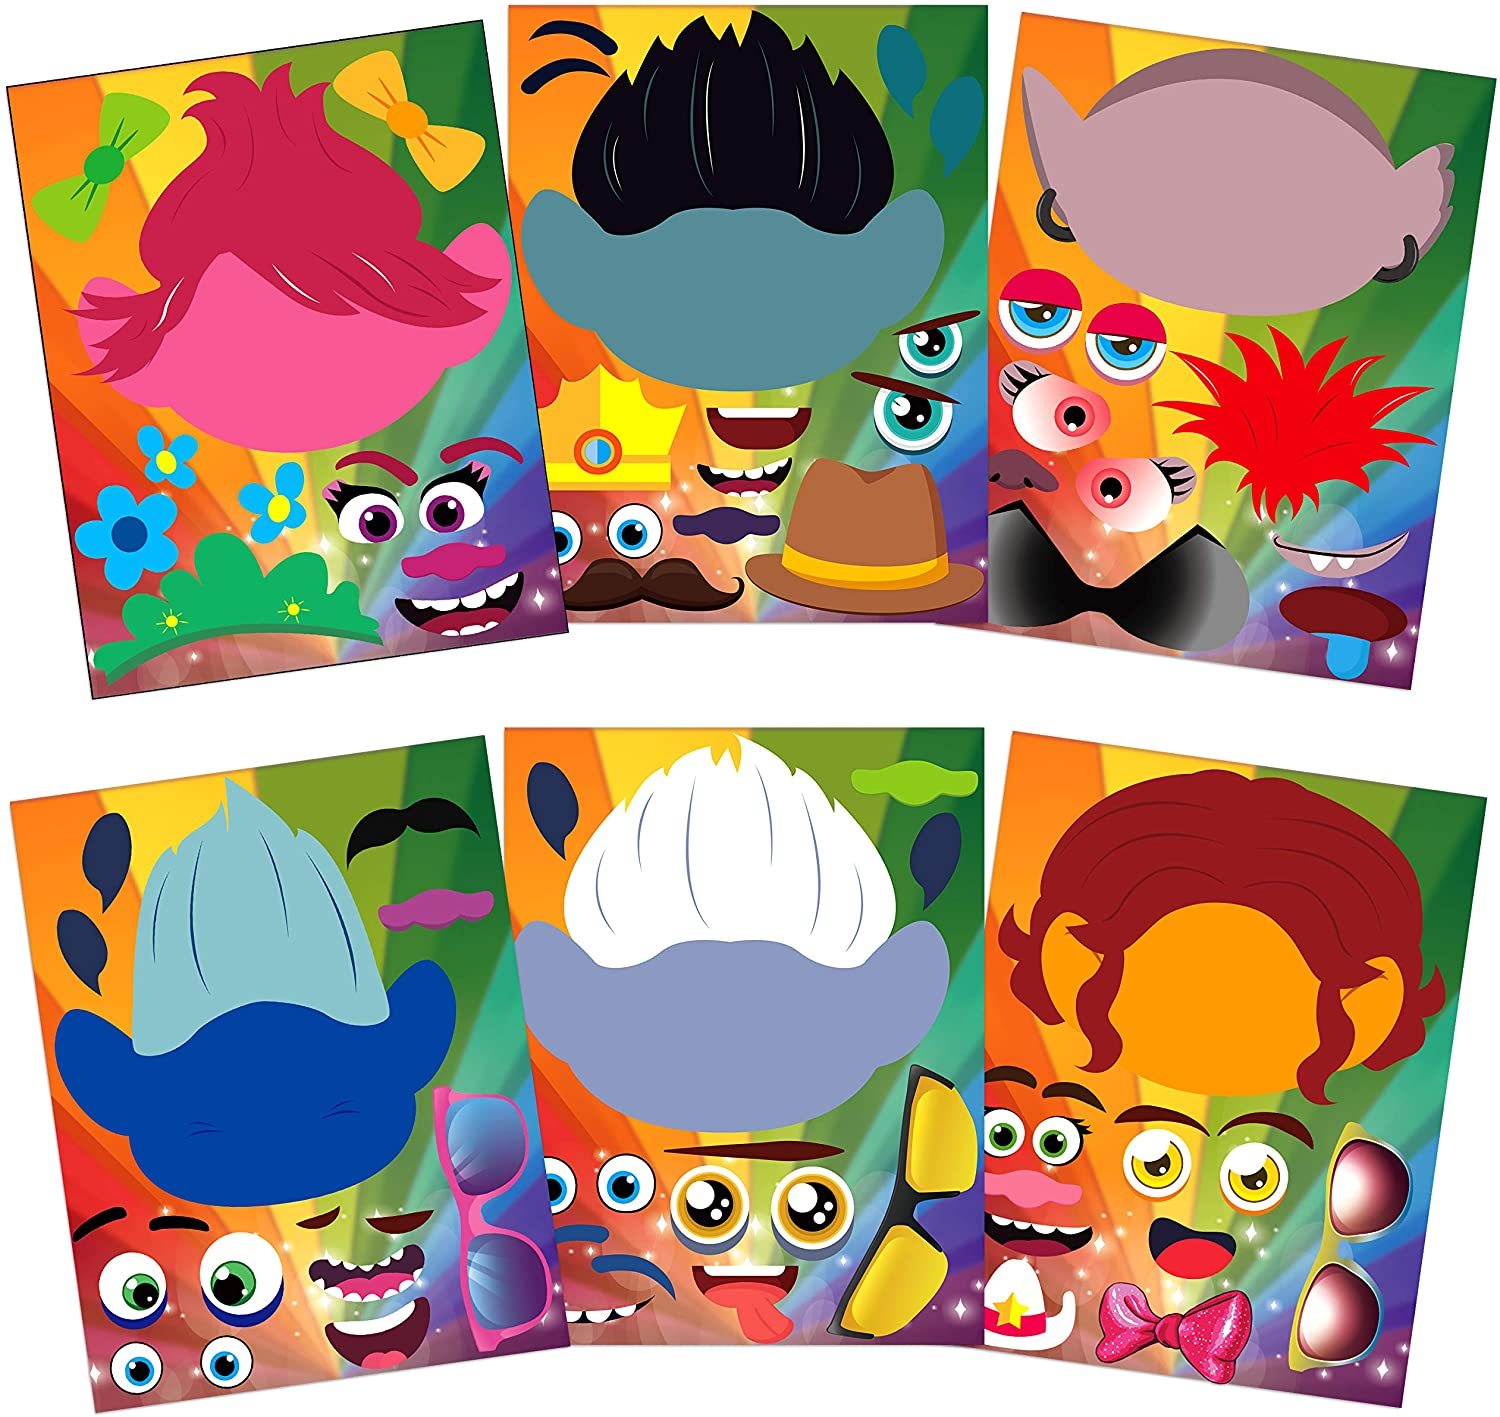 ANGOLIO 36Pcs Trolls Make a Face Stickers for Kids, DIY Poppy Face Sticker Fun DIY Project Kids Craft Game Trolls World Tour Party Supplies Baby Shower Game Birthday Party Gift Kids Room Decoration